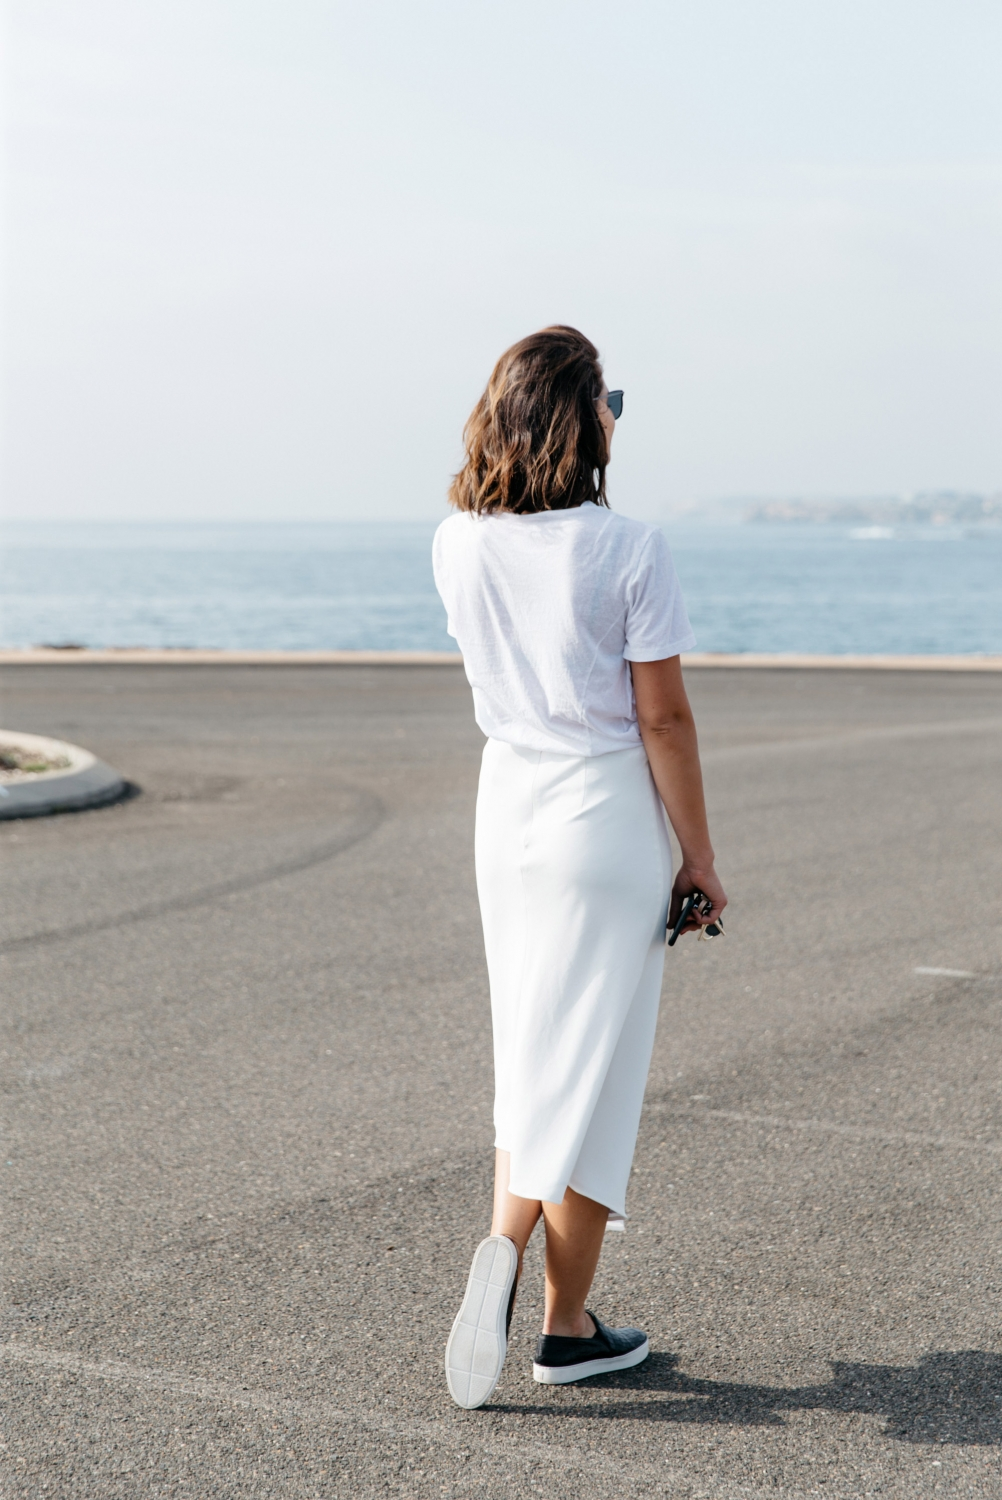 all white casual outfit wearing stuart weitzman